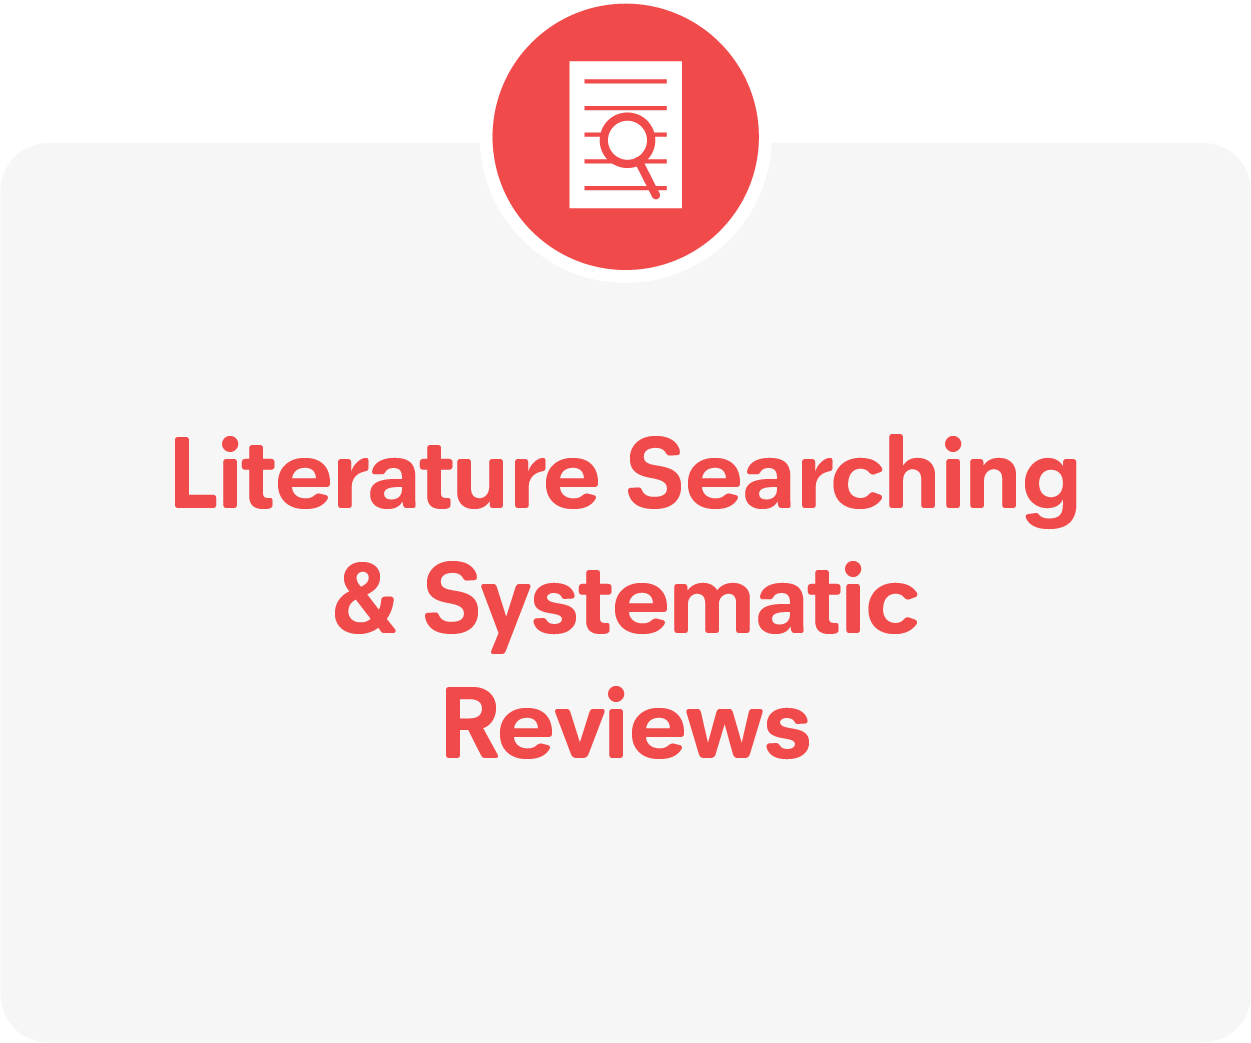 Literature searching guidance